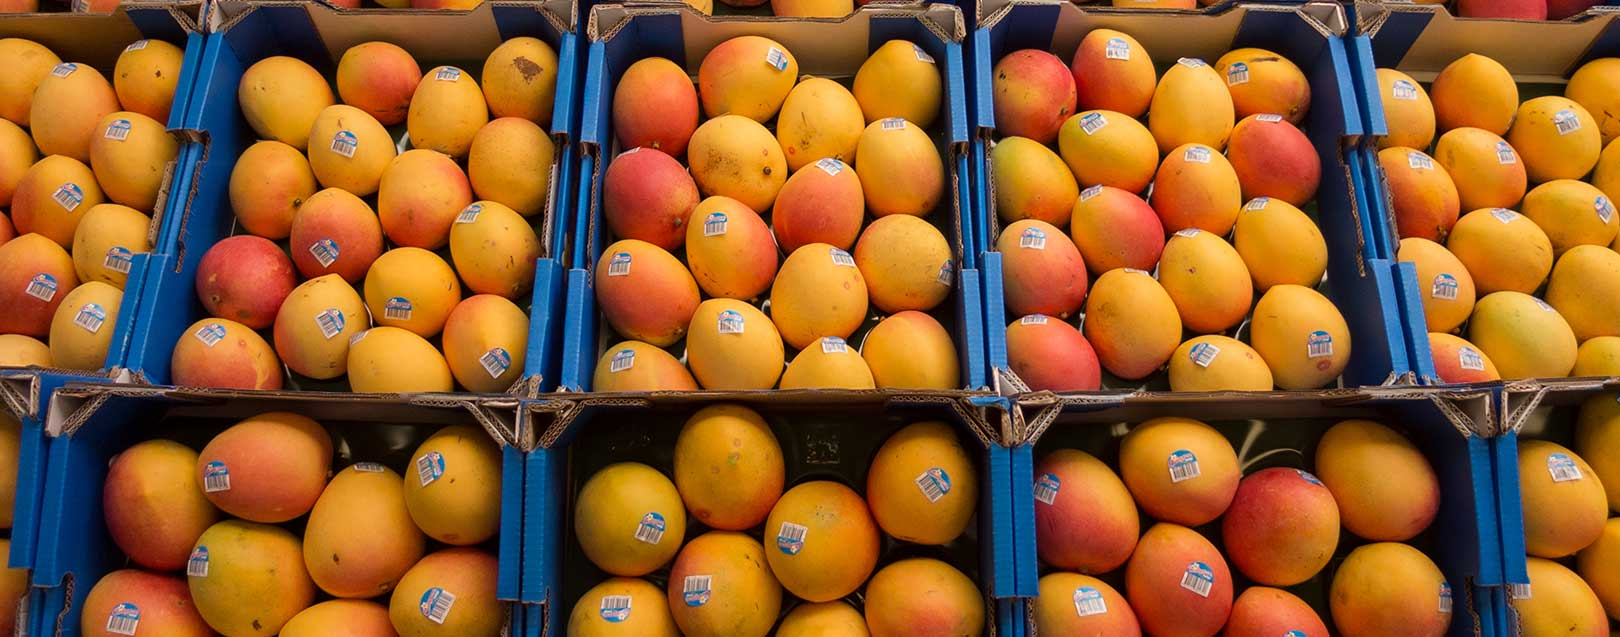 India may export mangoes to Australia after meeting their biosecurity standards